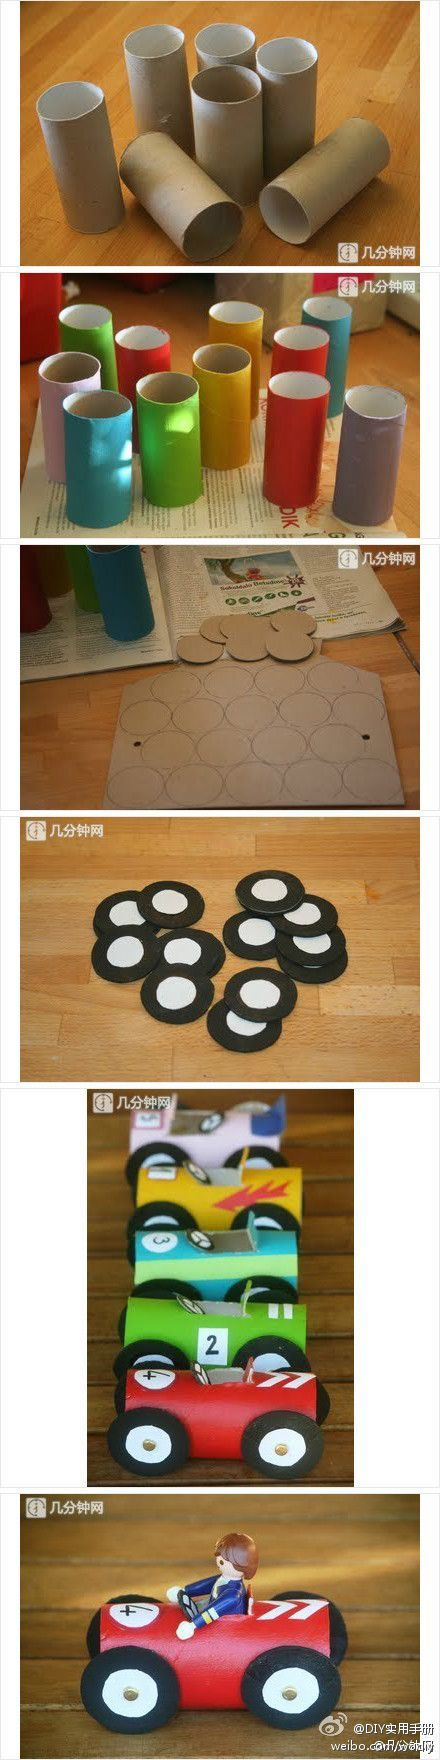 DIY Toilet Paper Roll Race Car DIY Projects